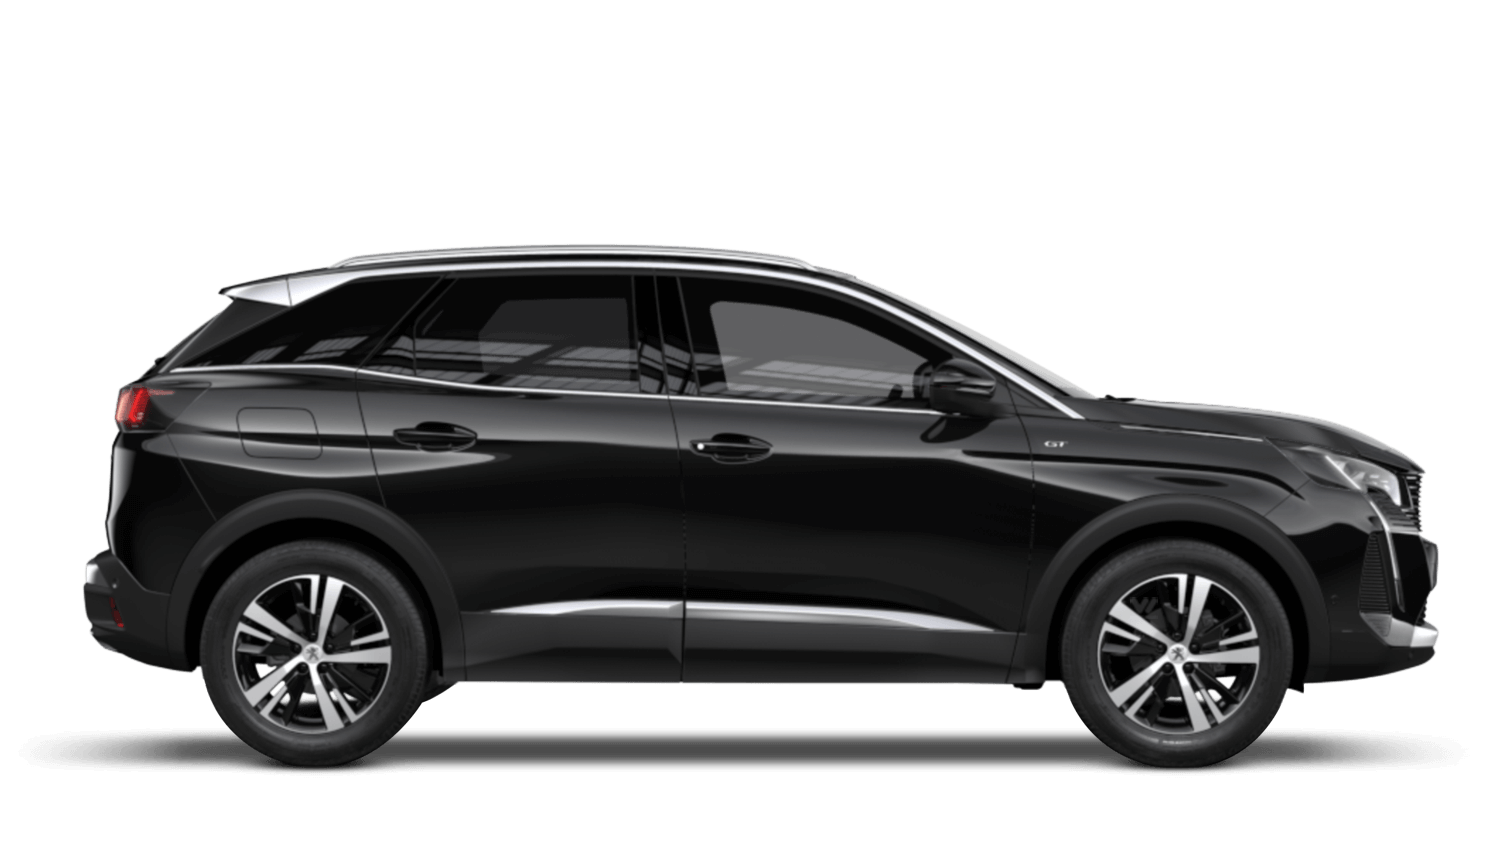 Nera Black New Peugeot 3008 SUV